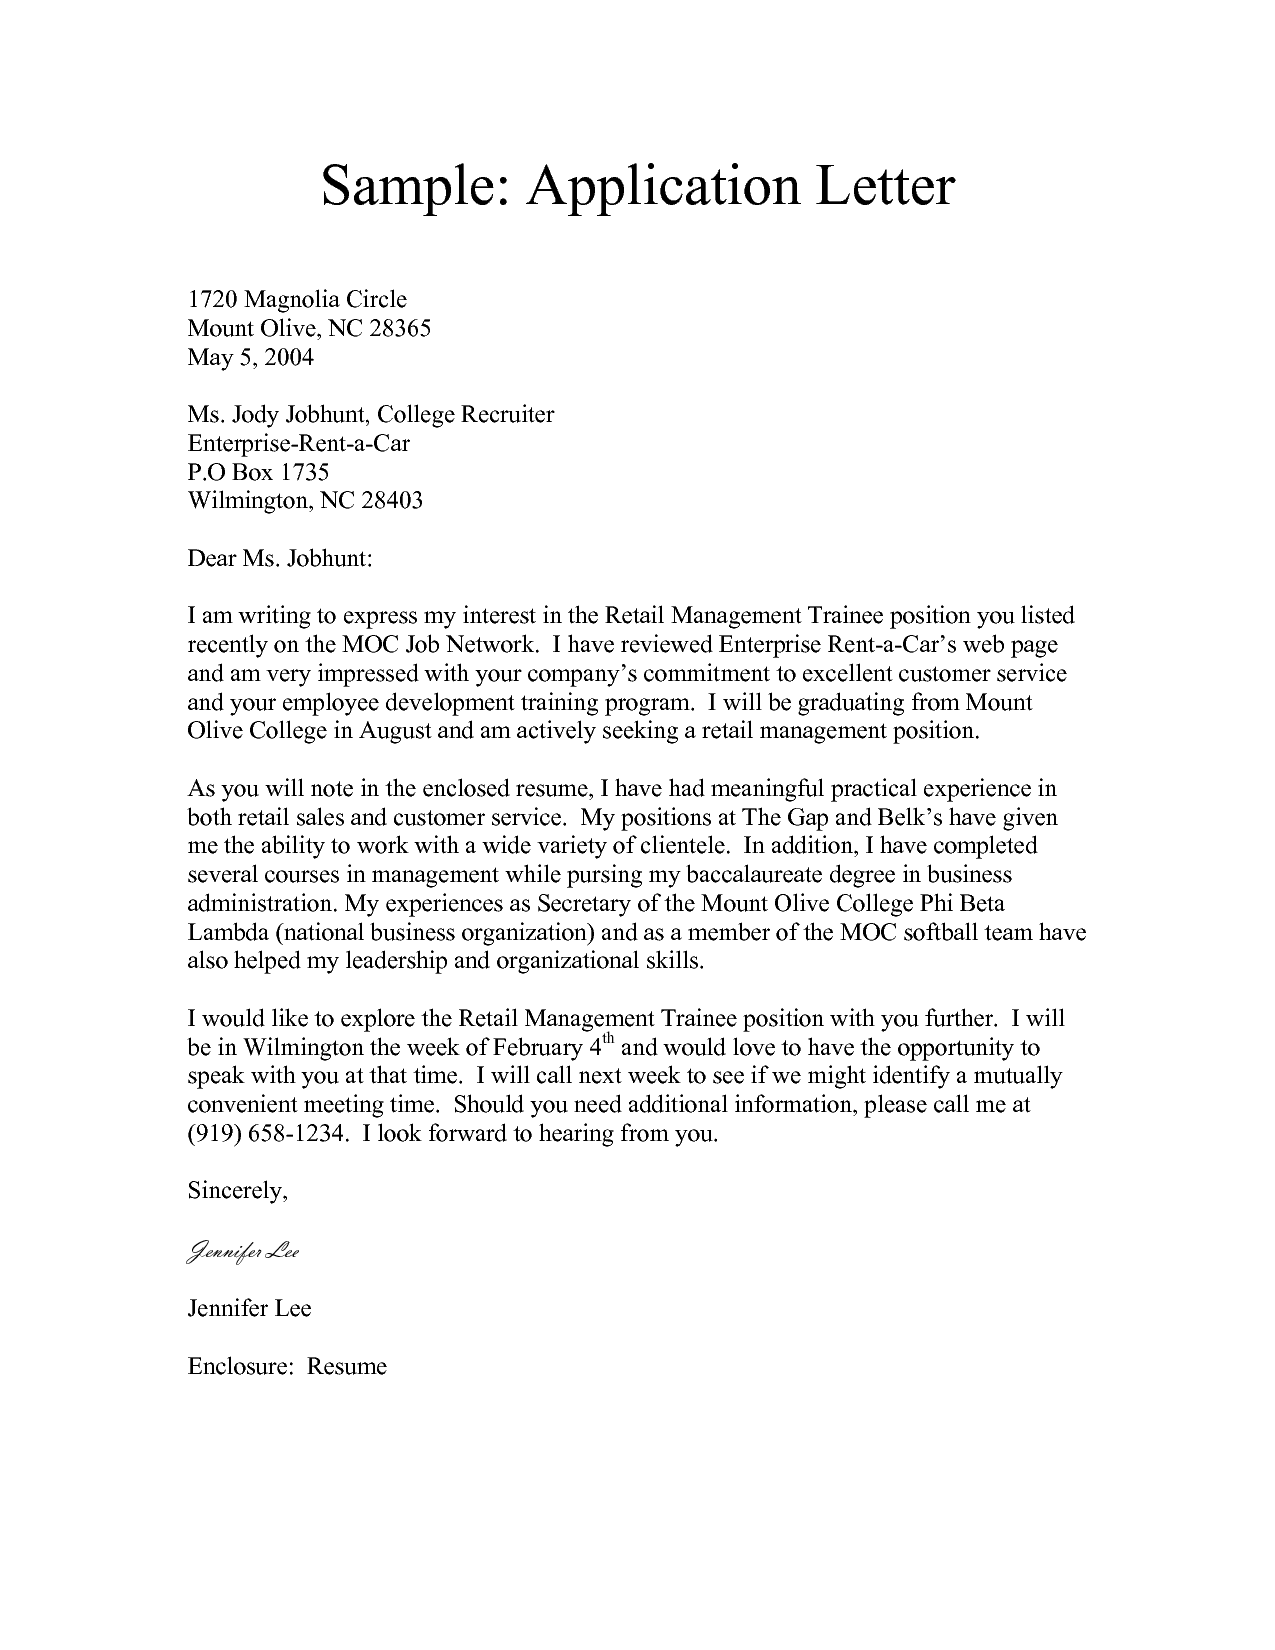 7 application letter samples sample letters word for Create a short application cover letter